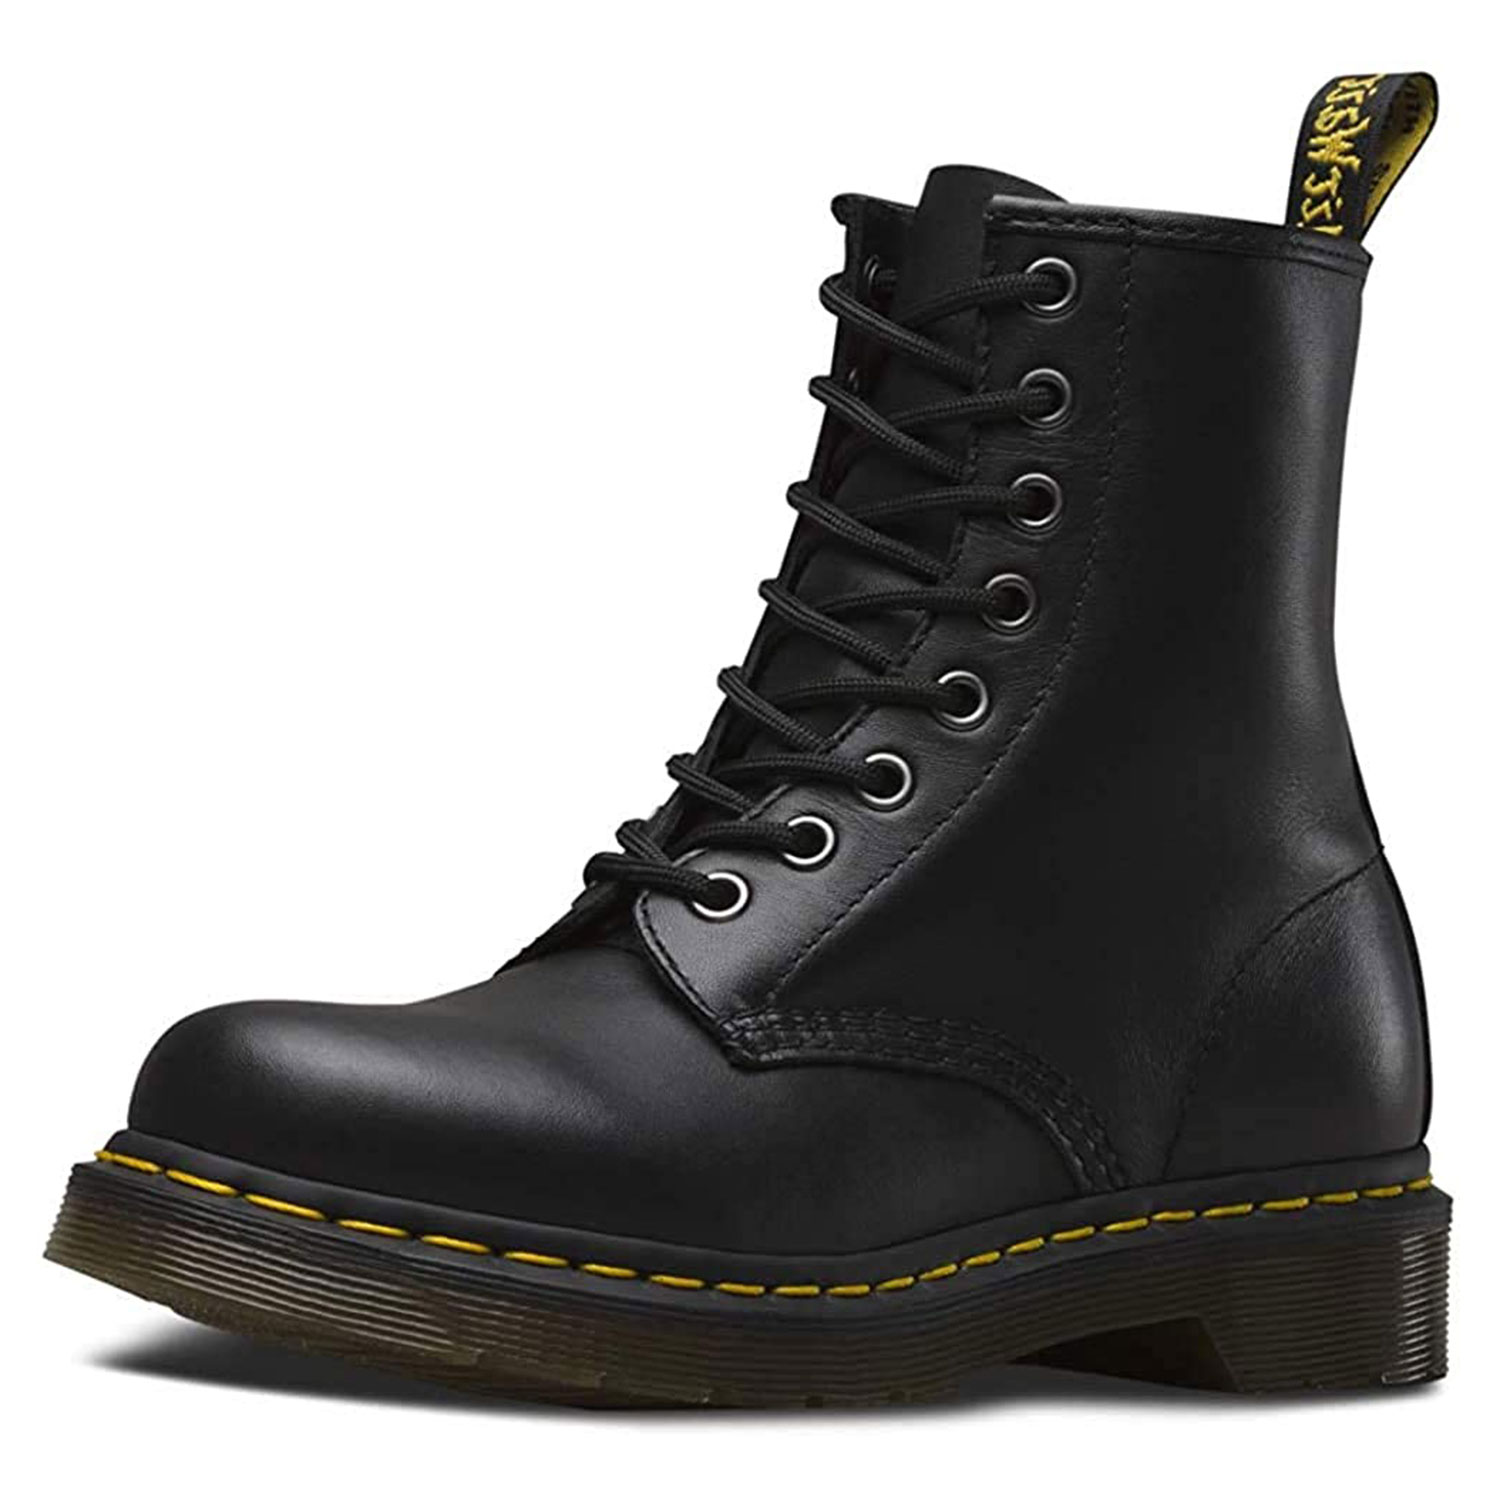 dr martens women's lace up boot